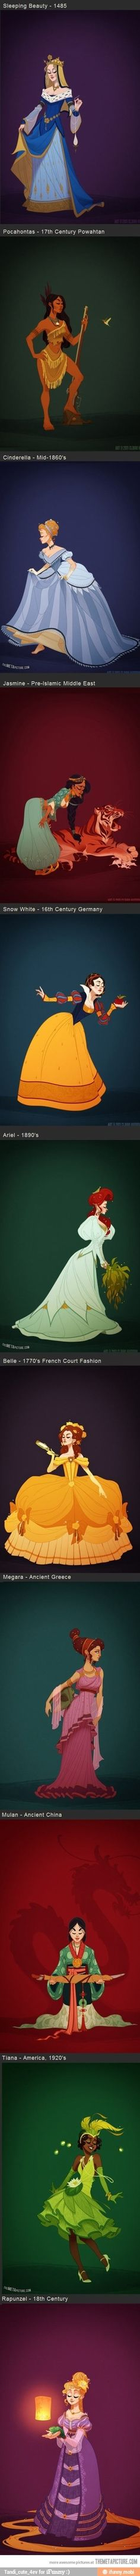 Disney Princesses in their appropriate time period and clothes!